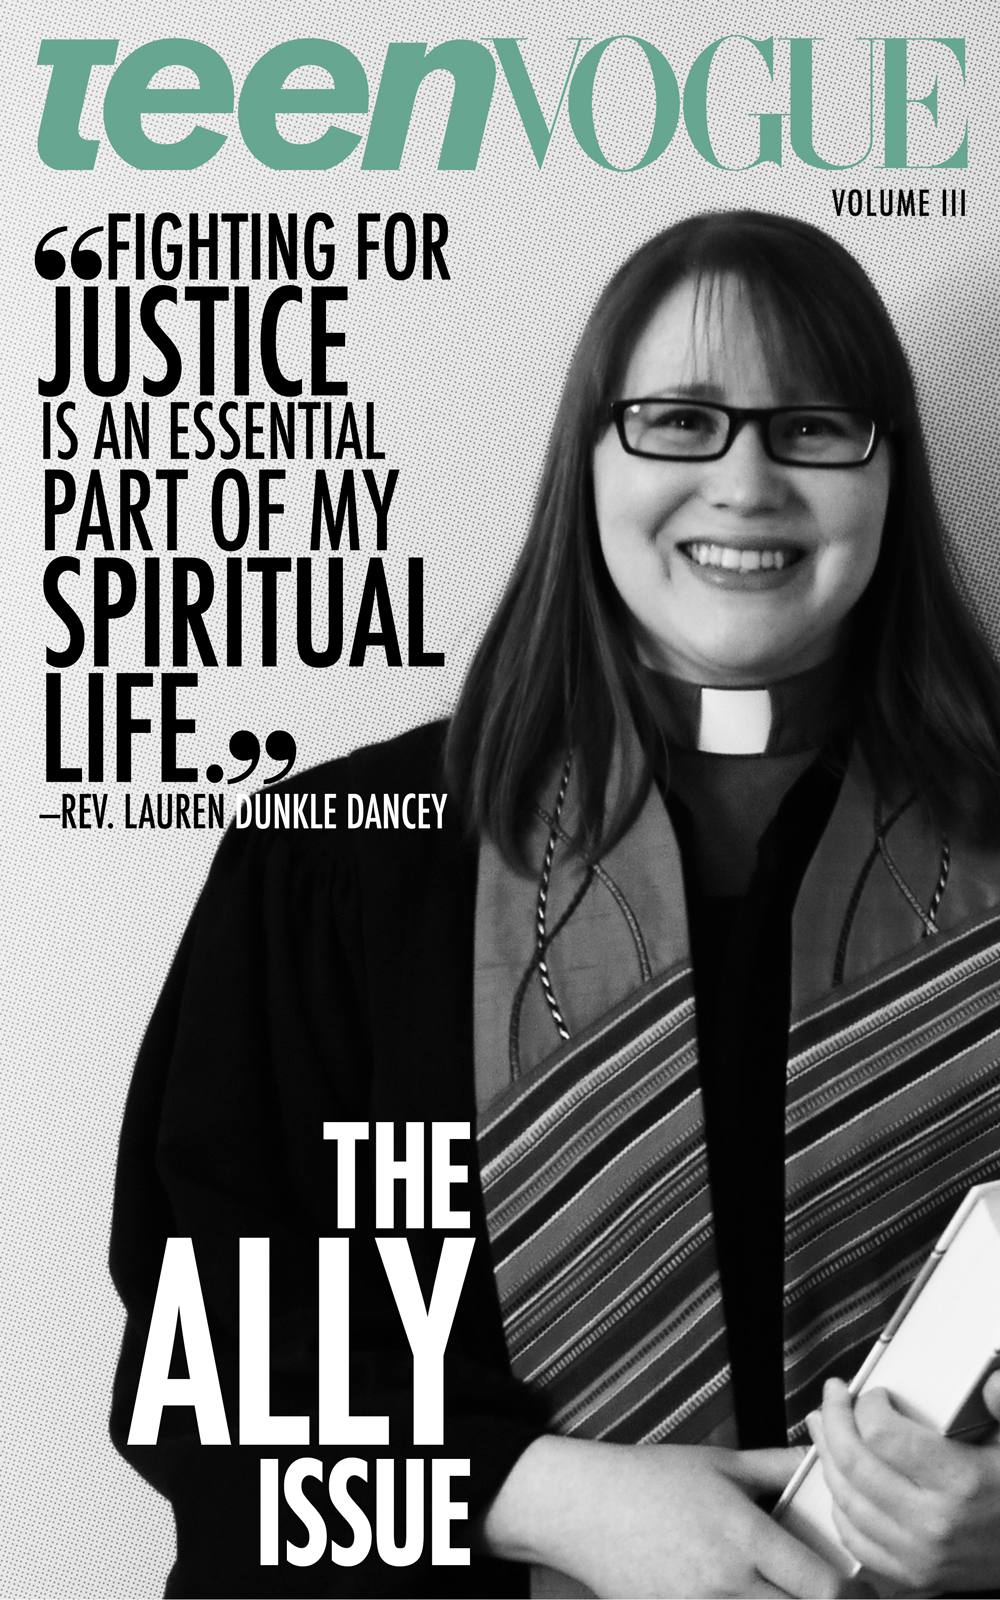 Rev. Lauren Dunkle Dancey Katherine Young